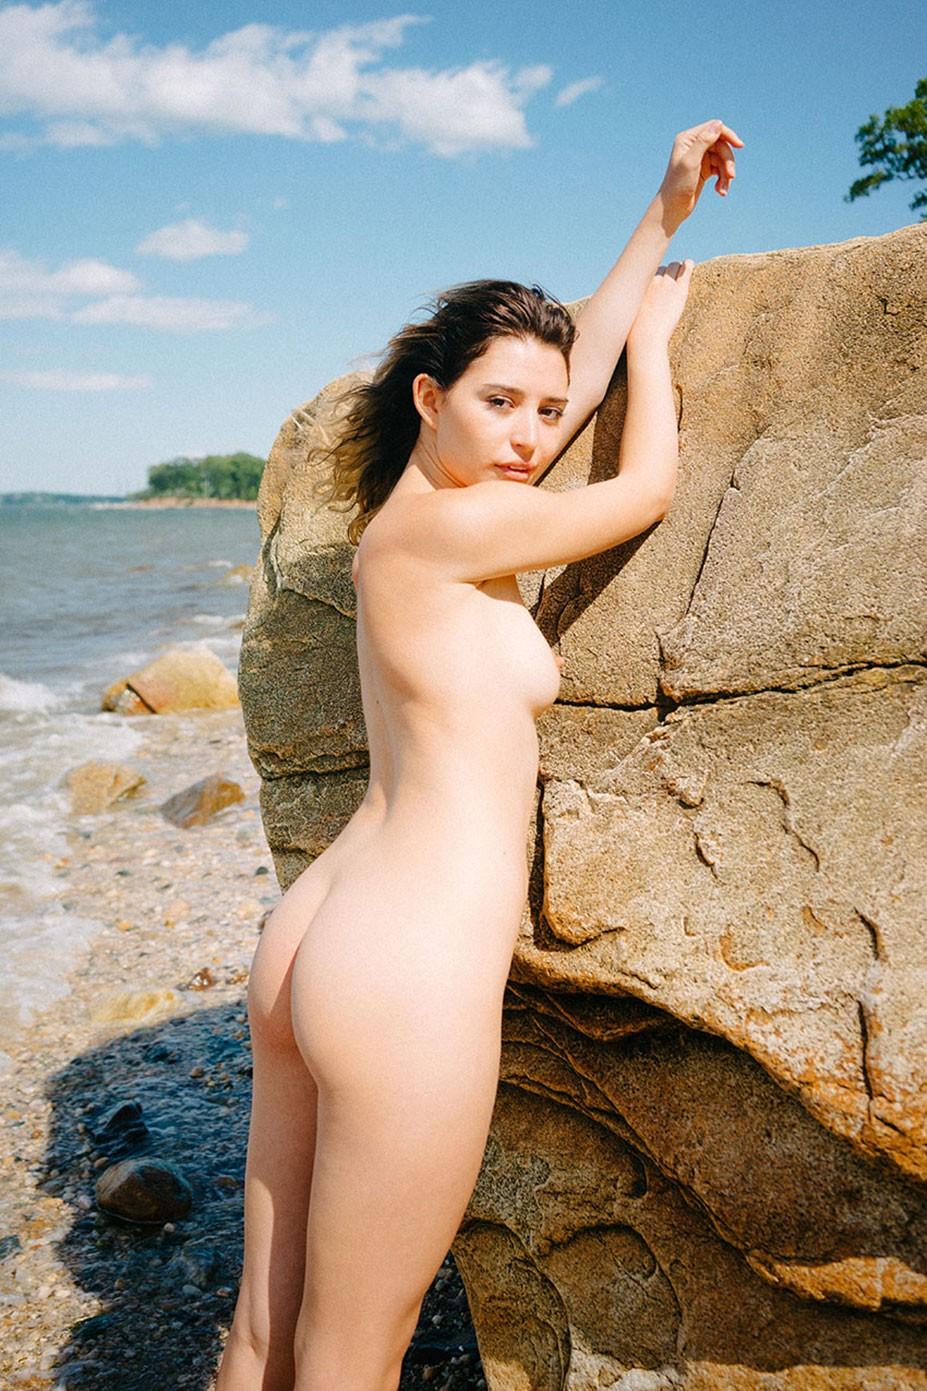 Paisley Gilbert nude by Sam Livm - Somewhere Magazine